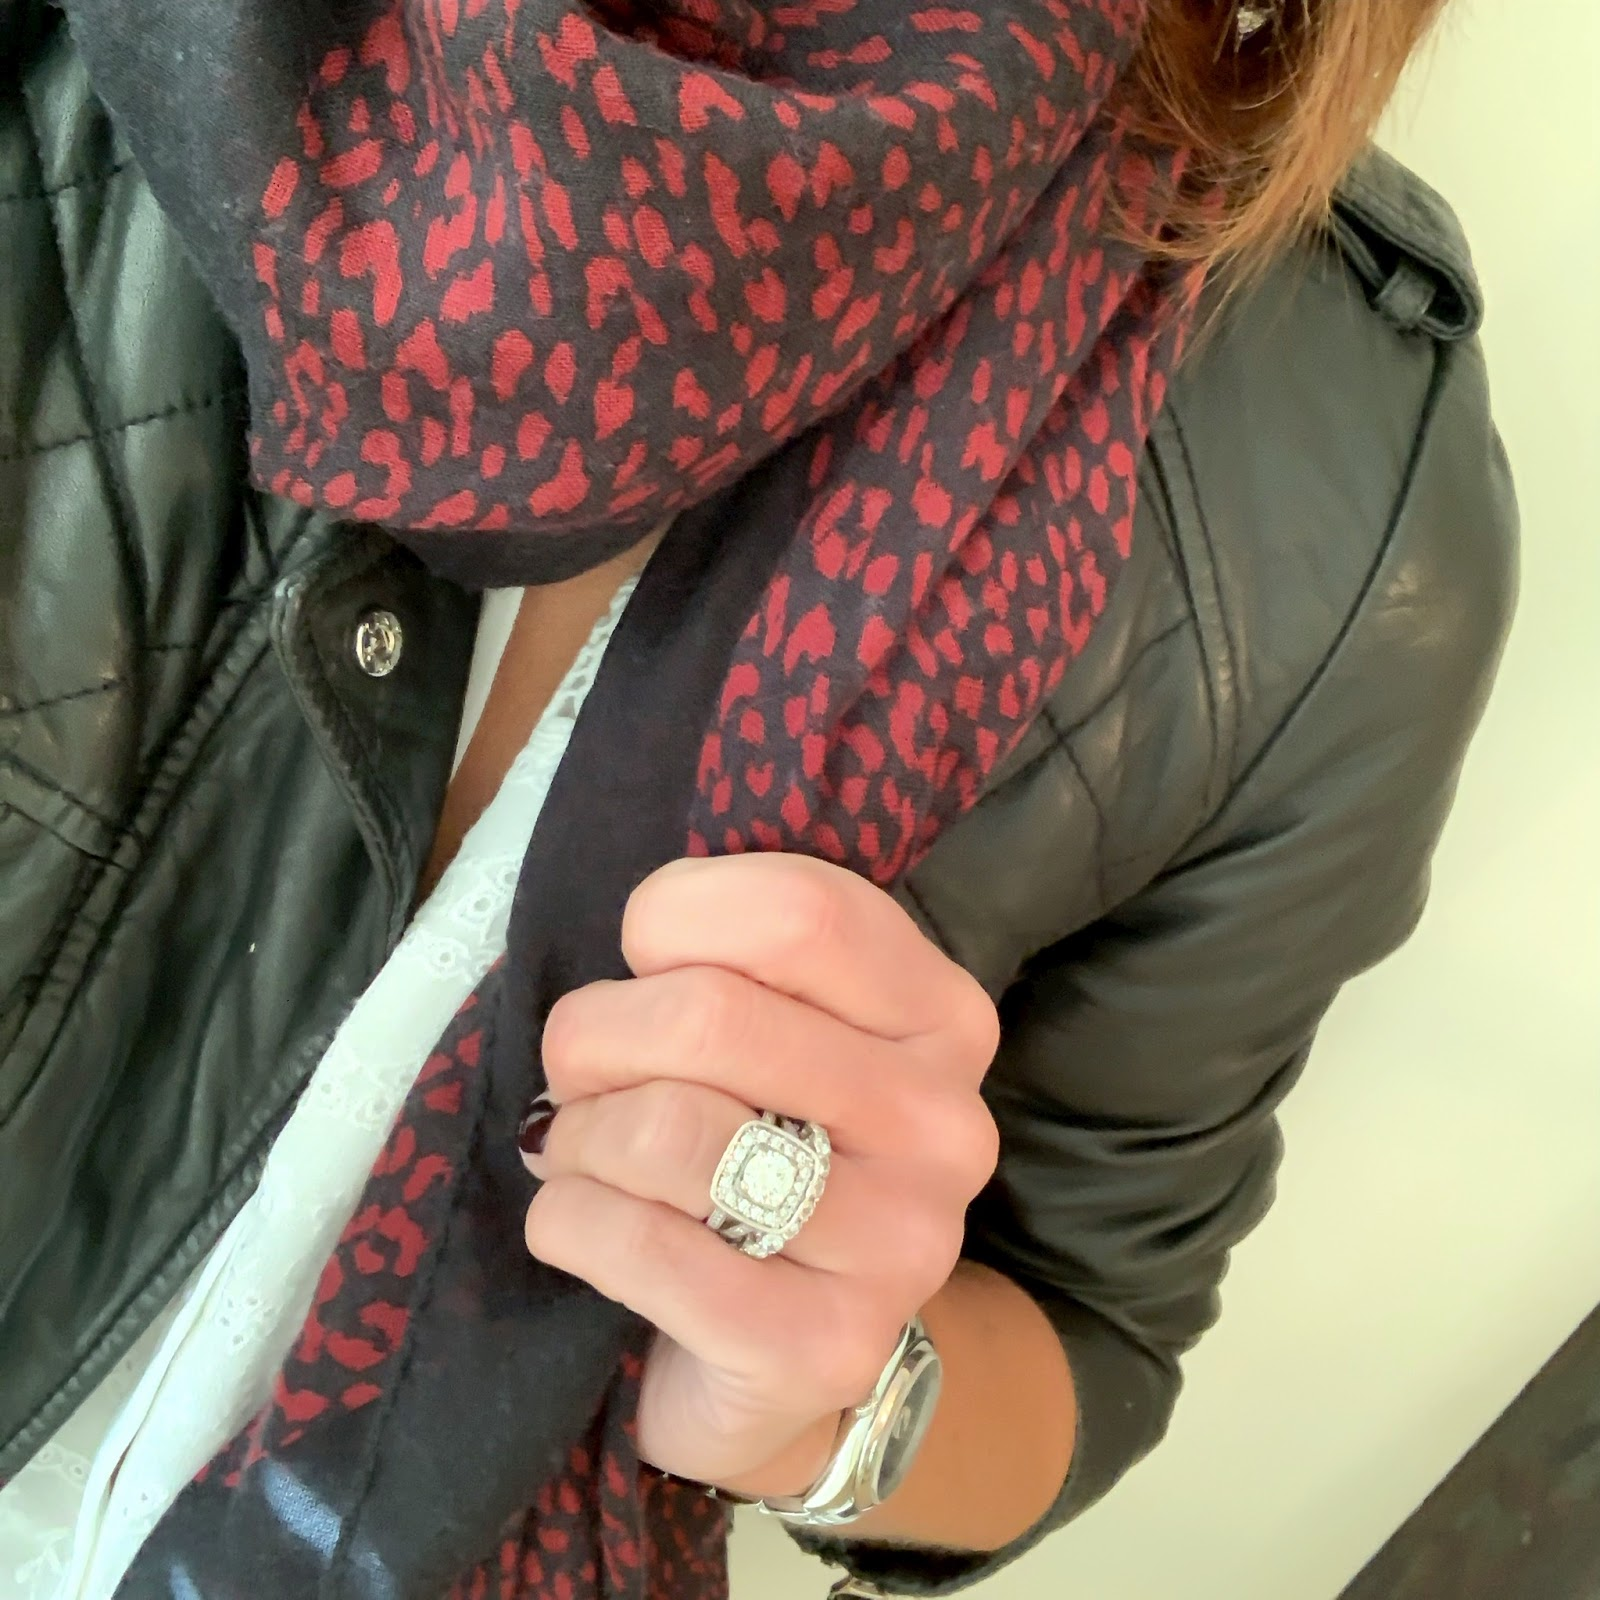 my midlife fashion, saint laurent leopard print scarf, isabel marant etoile leather jacket, somerset by alice temperley white blouse, hush skinny biker jeans, french sole india ballet shoes, mulberry bayswater